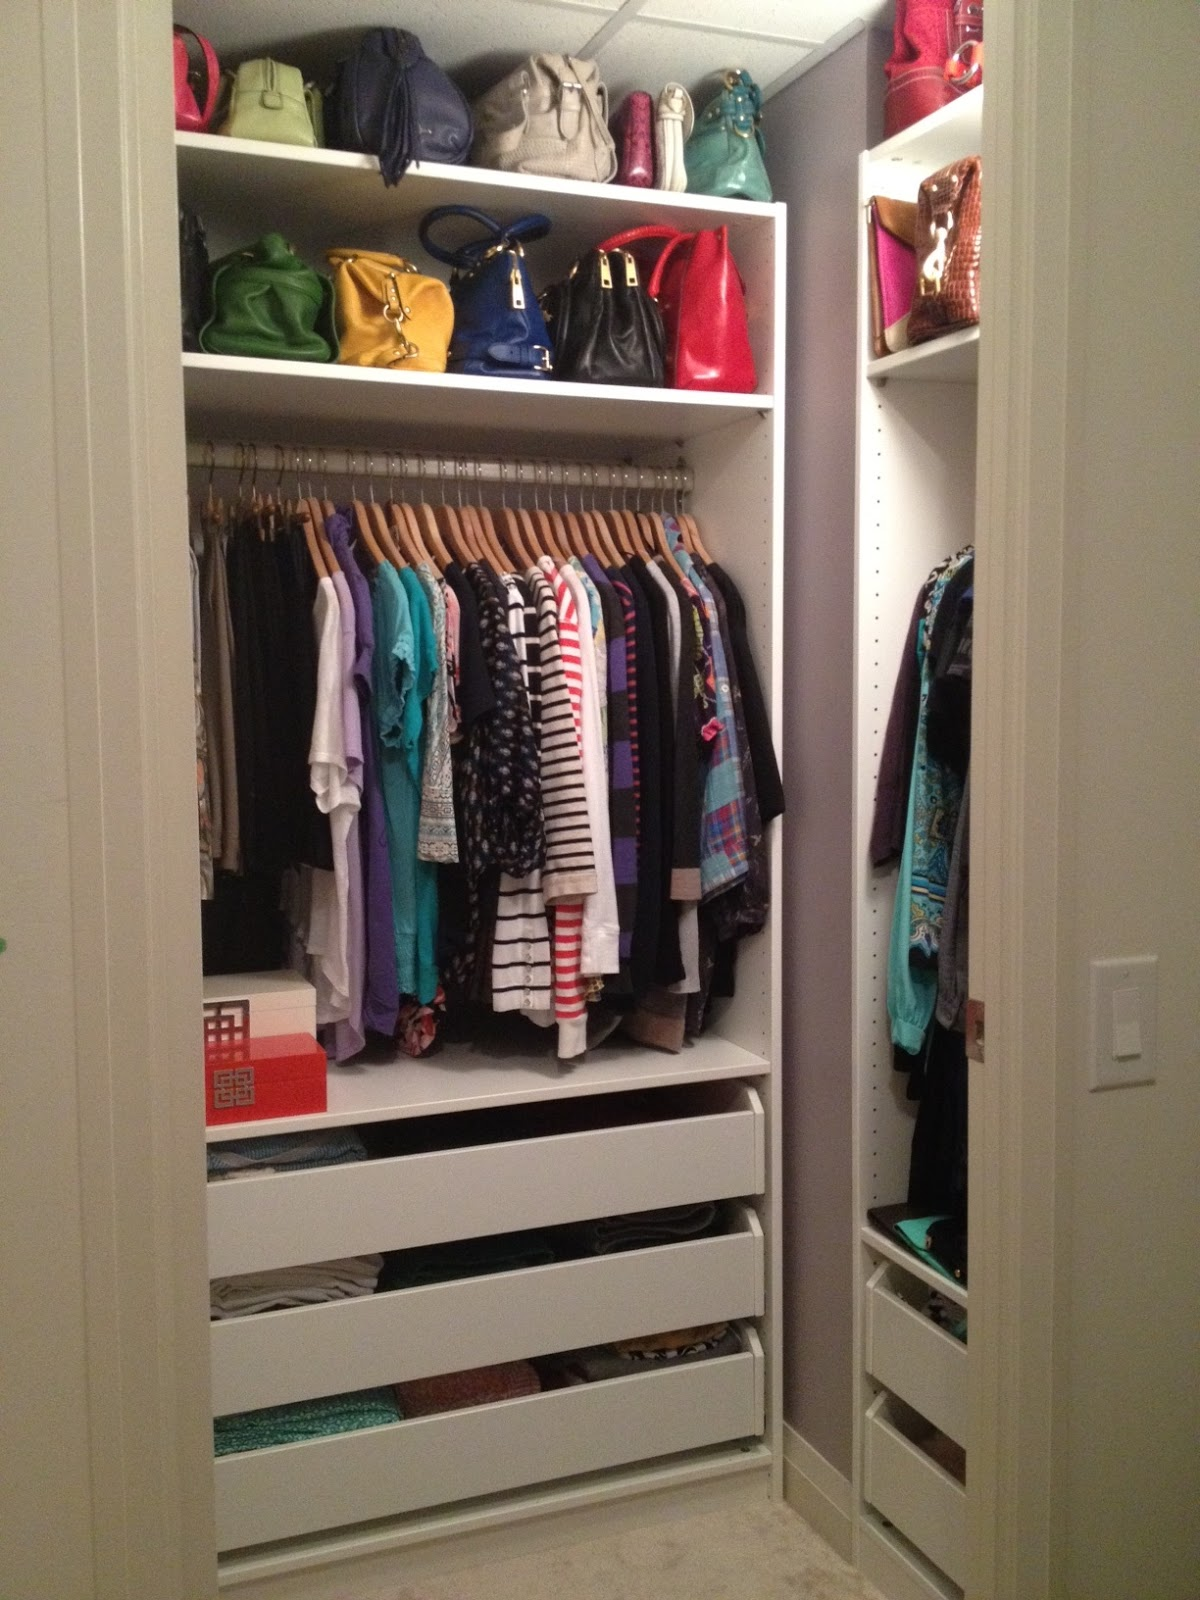 Ikea Closet Storage | Ikea Drawers for Inside Wardrobe | Ikea White Closet